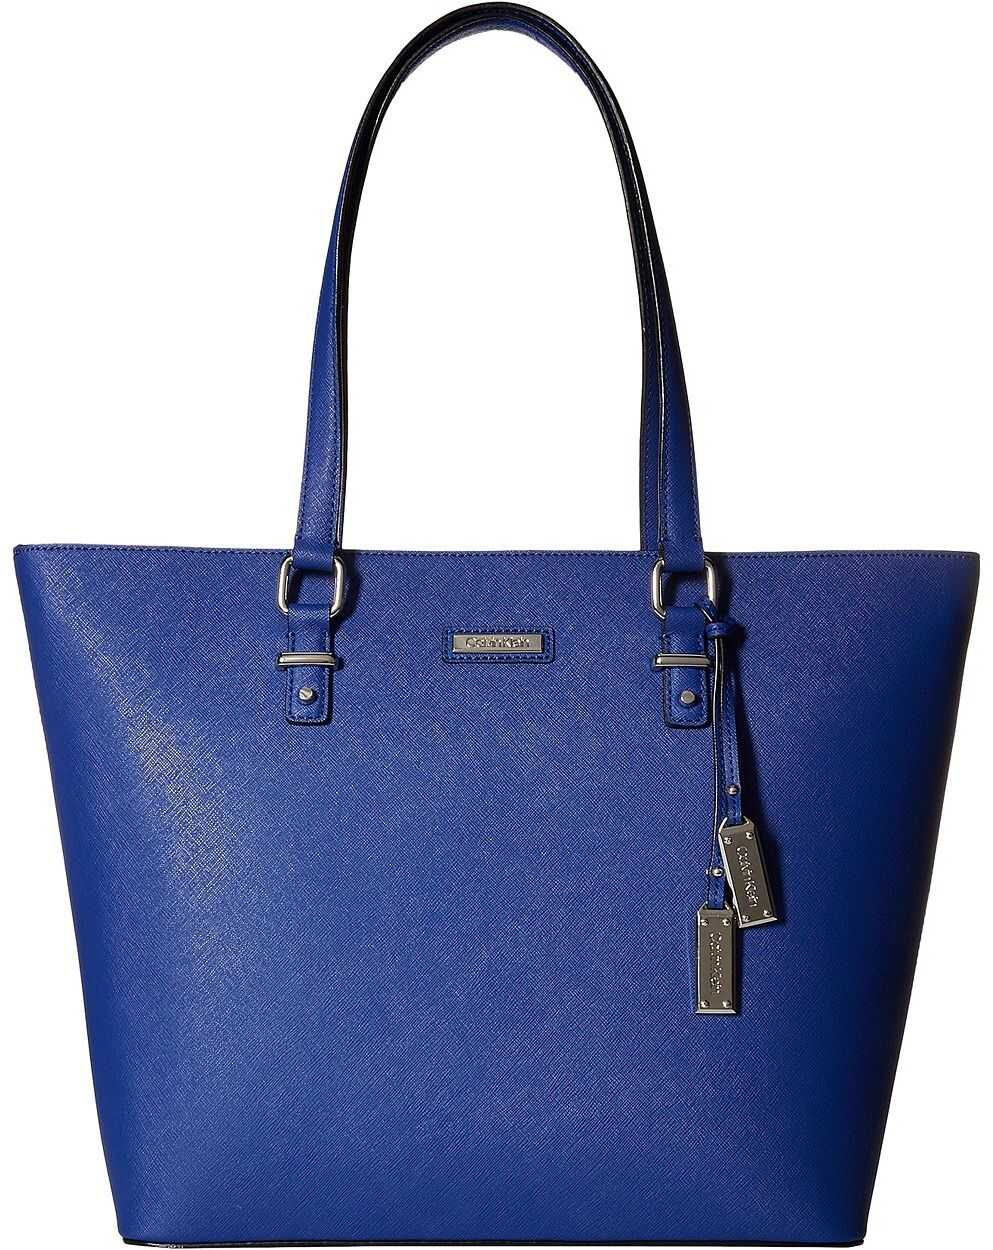 Calvin Klein Saffiano Leather Tote Retro Blue